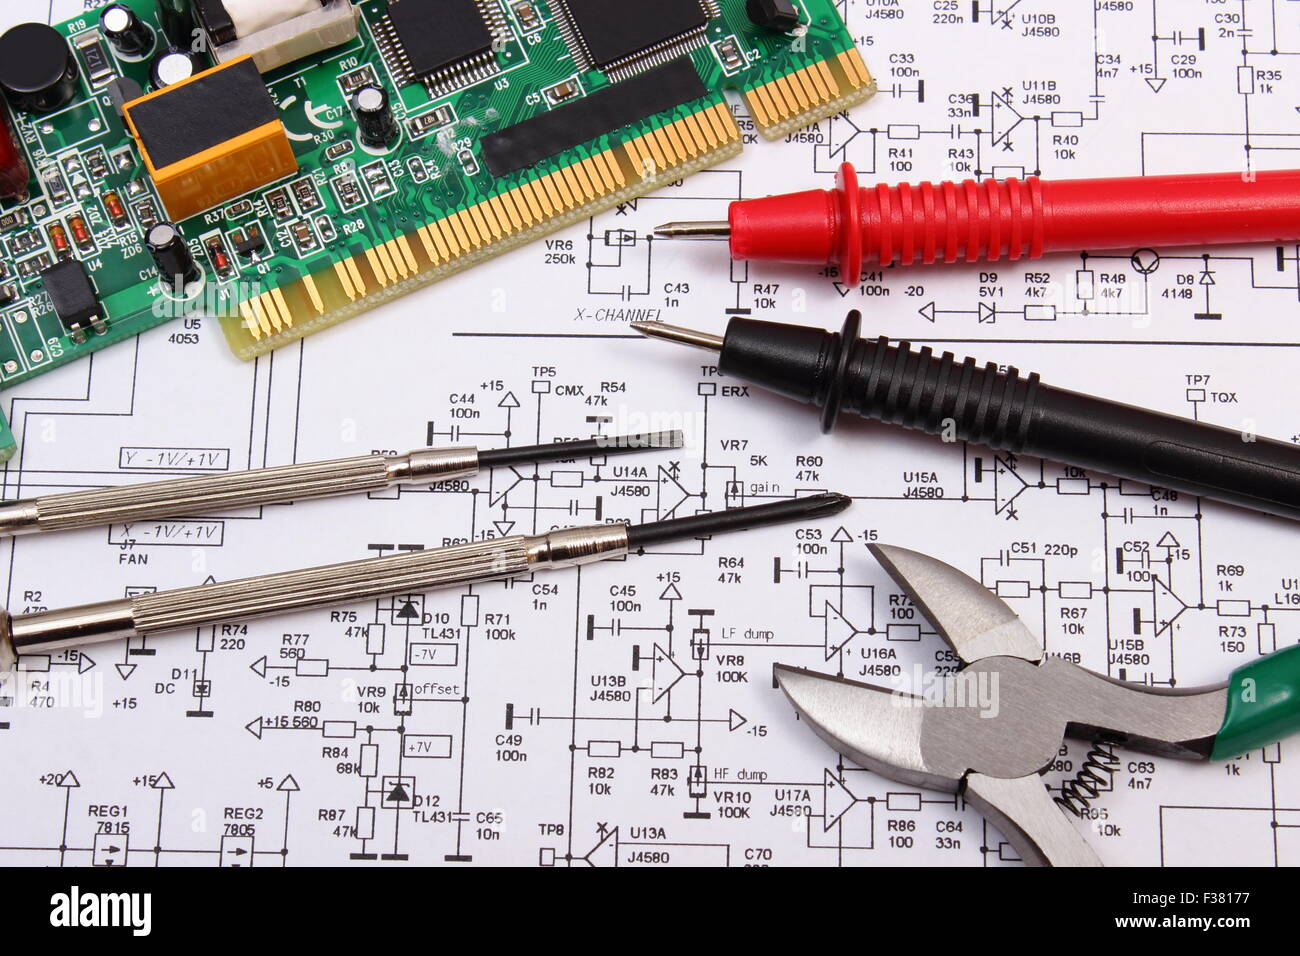 Circuit Diagram Stock Photos Images Page 2 Glass On The Electronic Schematic Diagramideal Technology Background Printed Board With Electrical Components Precision Tools And Cable Of Multimeter Construction Drawing